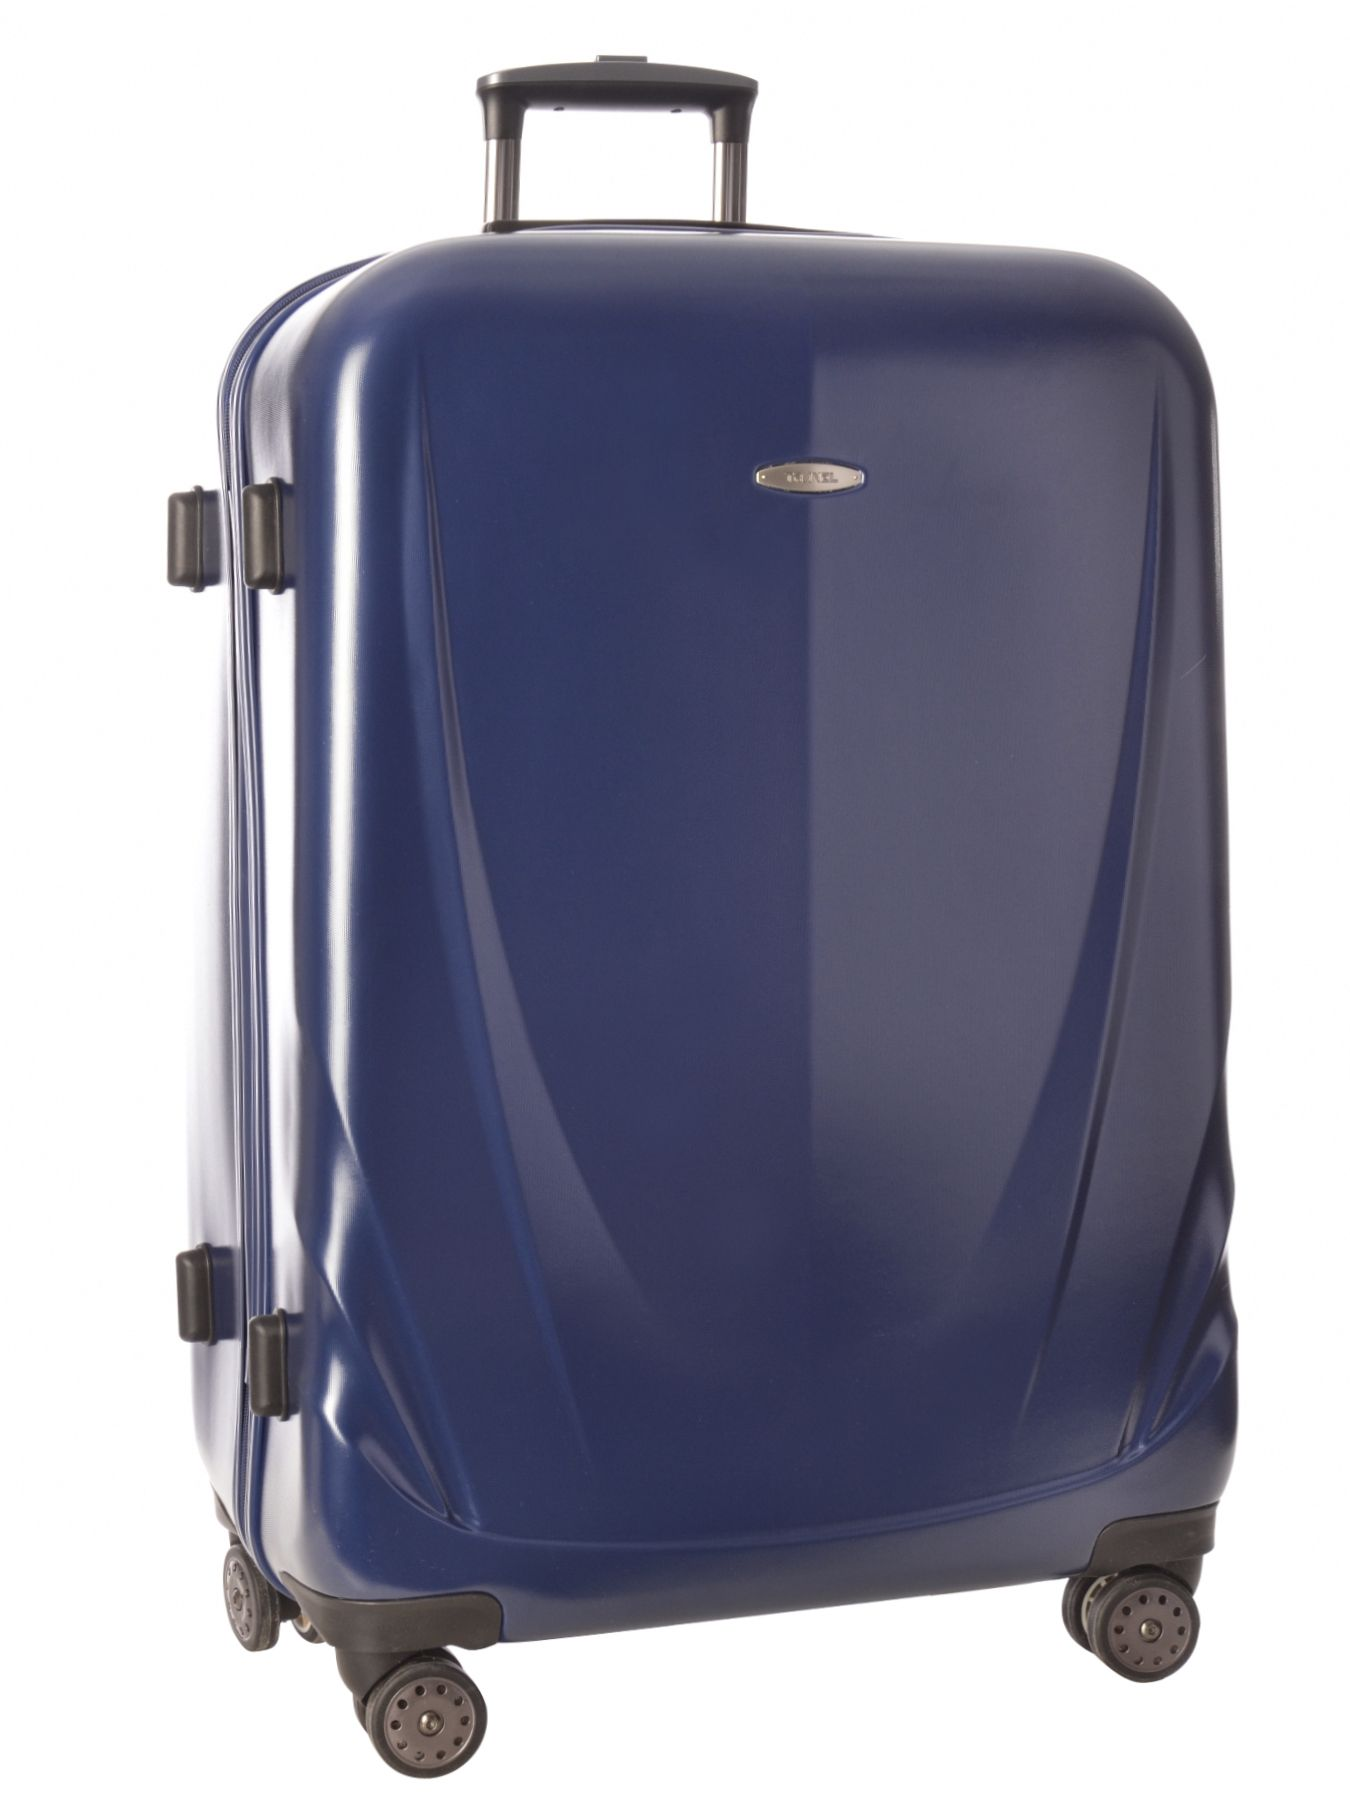 bagages pas chers travel dark blue meli pet48 l. Black Bedroom Furniture Sets. Home Design Ideas